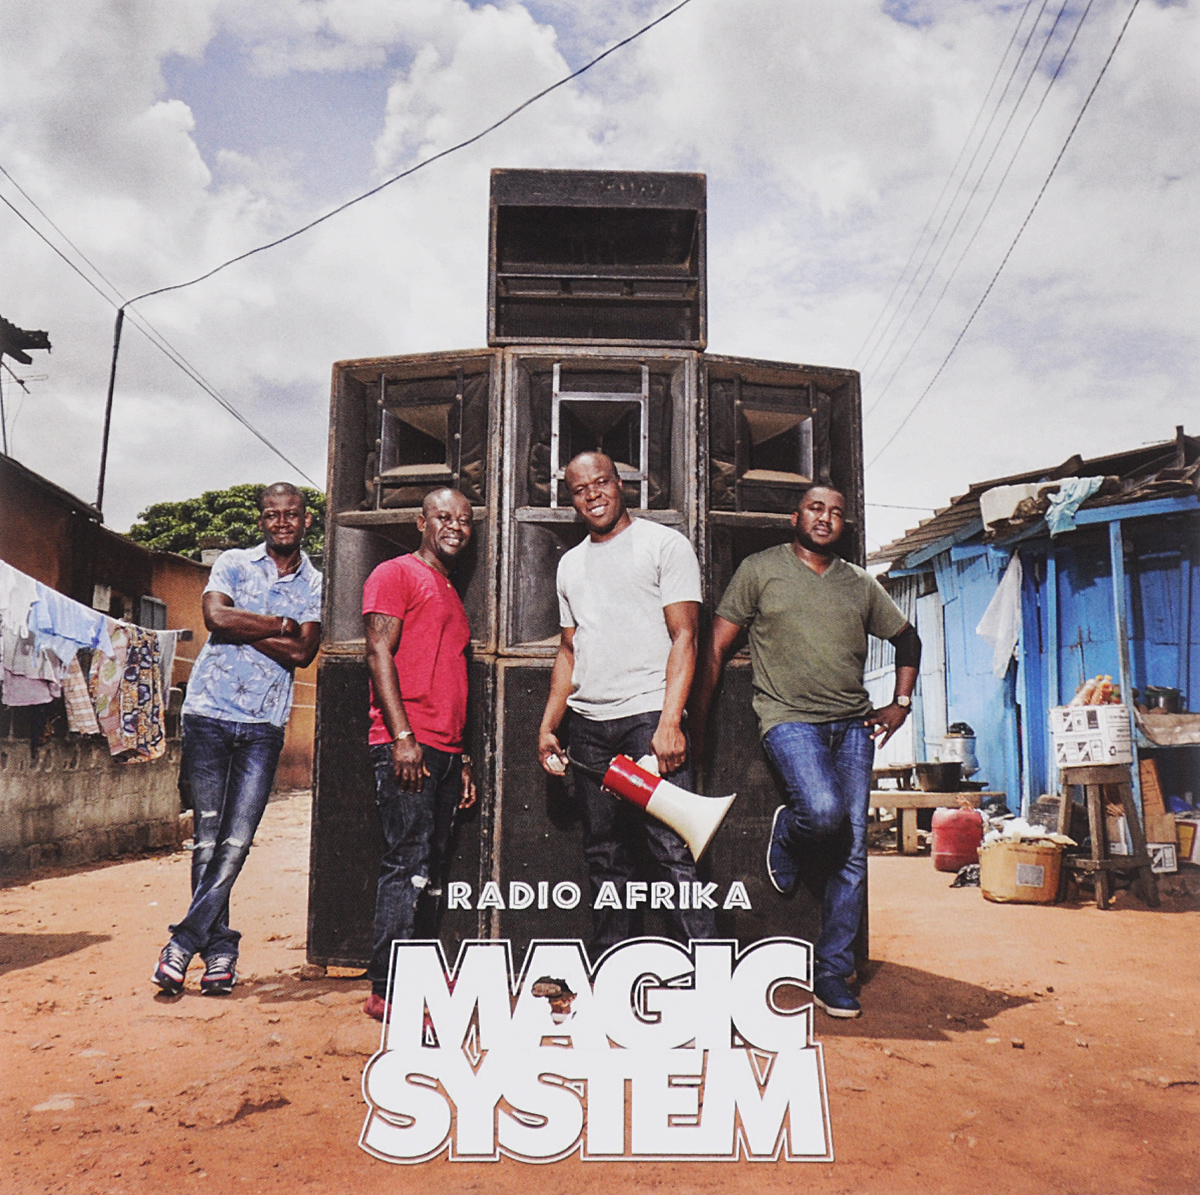 Magic System Magic System. Radio Afrika